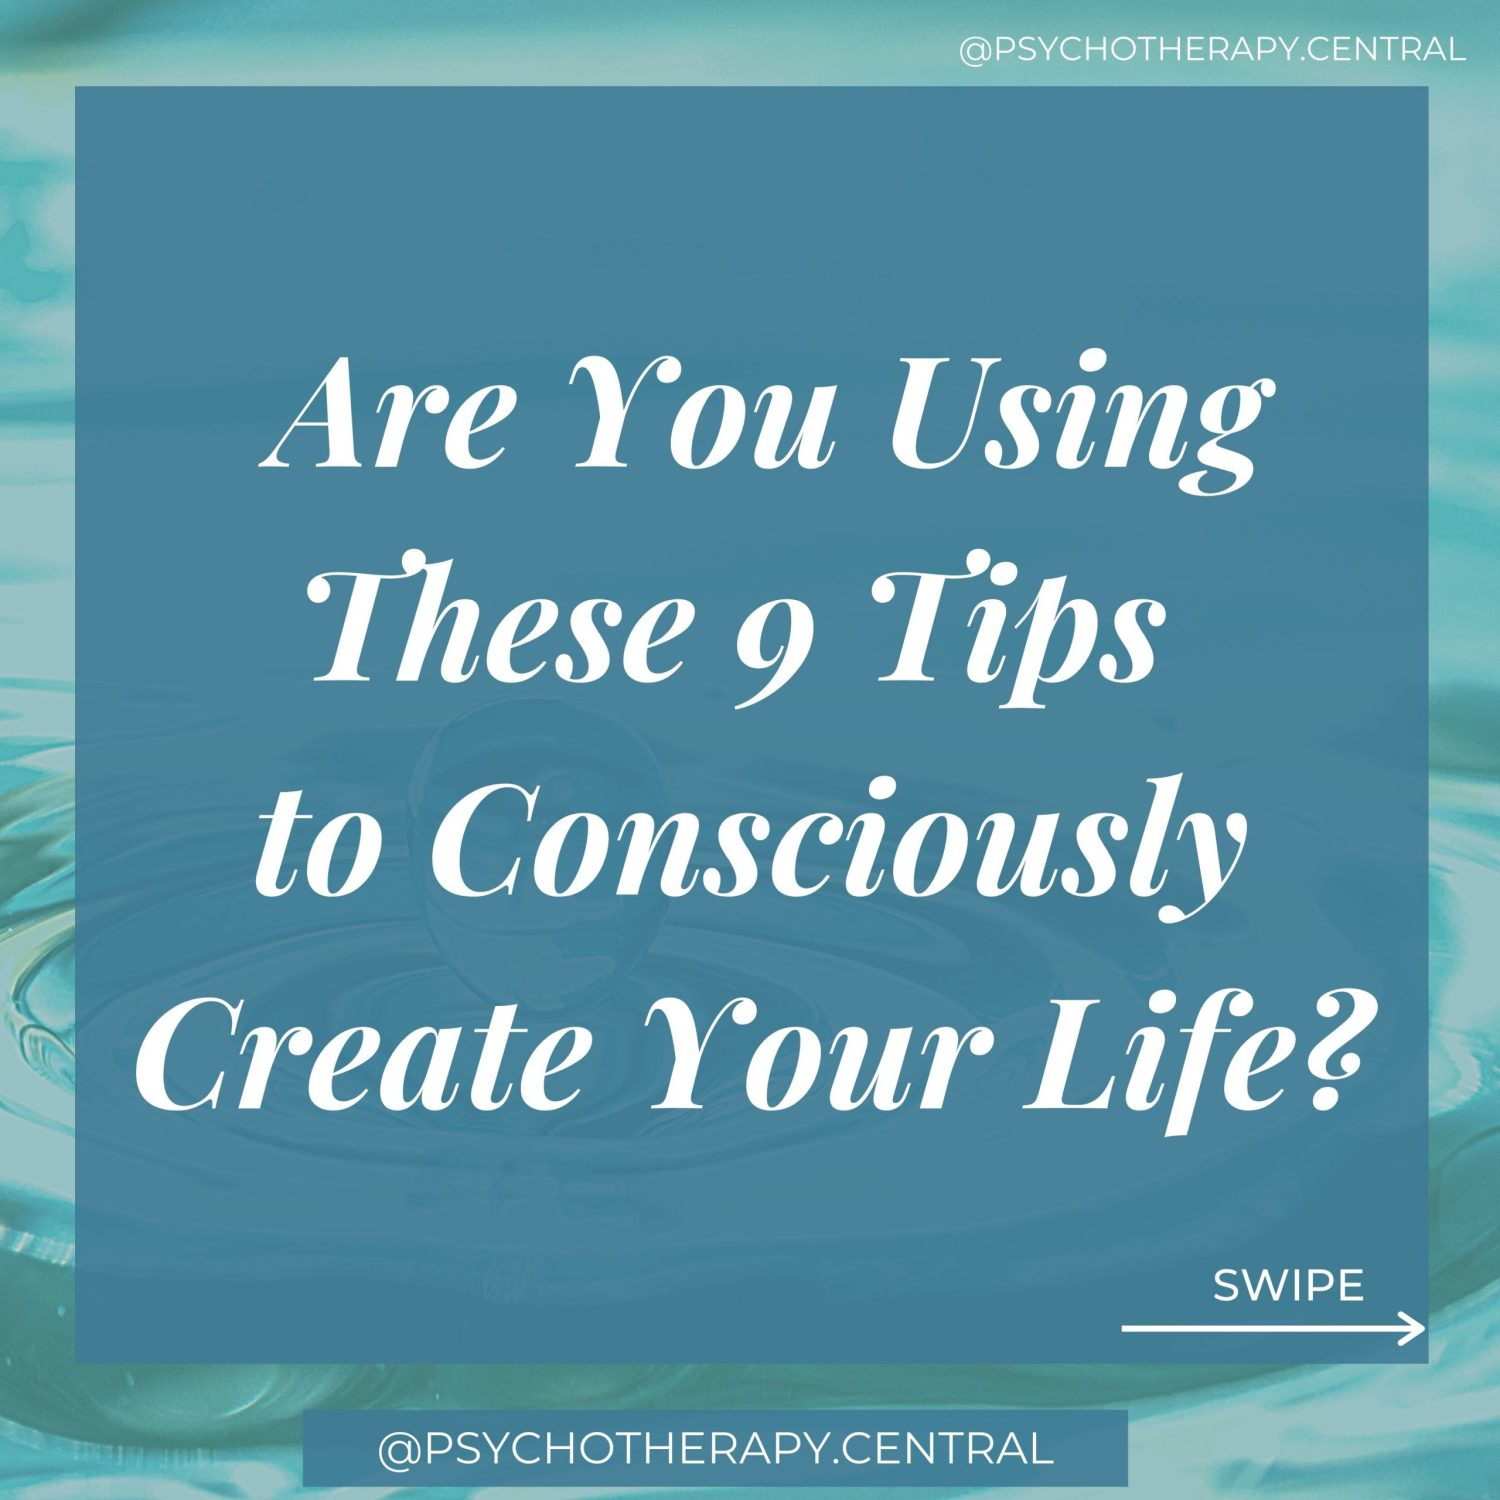 Are you Using These 9 Tips to Consciously Create Your Life?